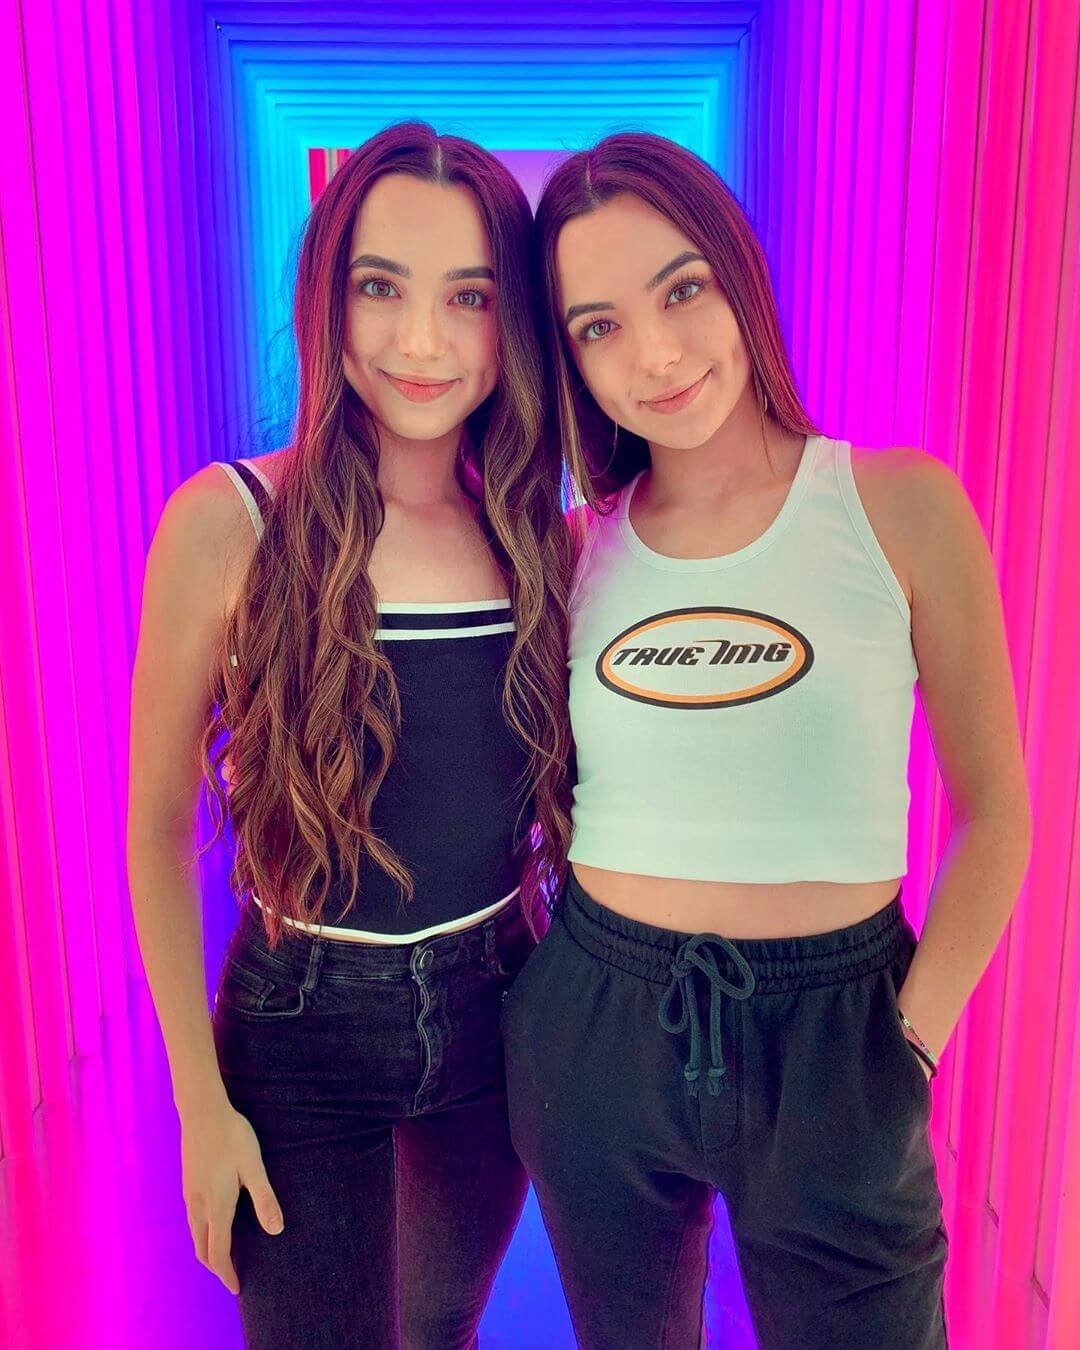 Merrell Twins awesome photo